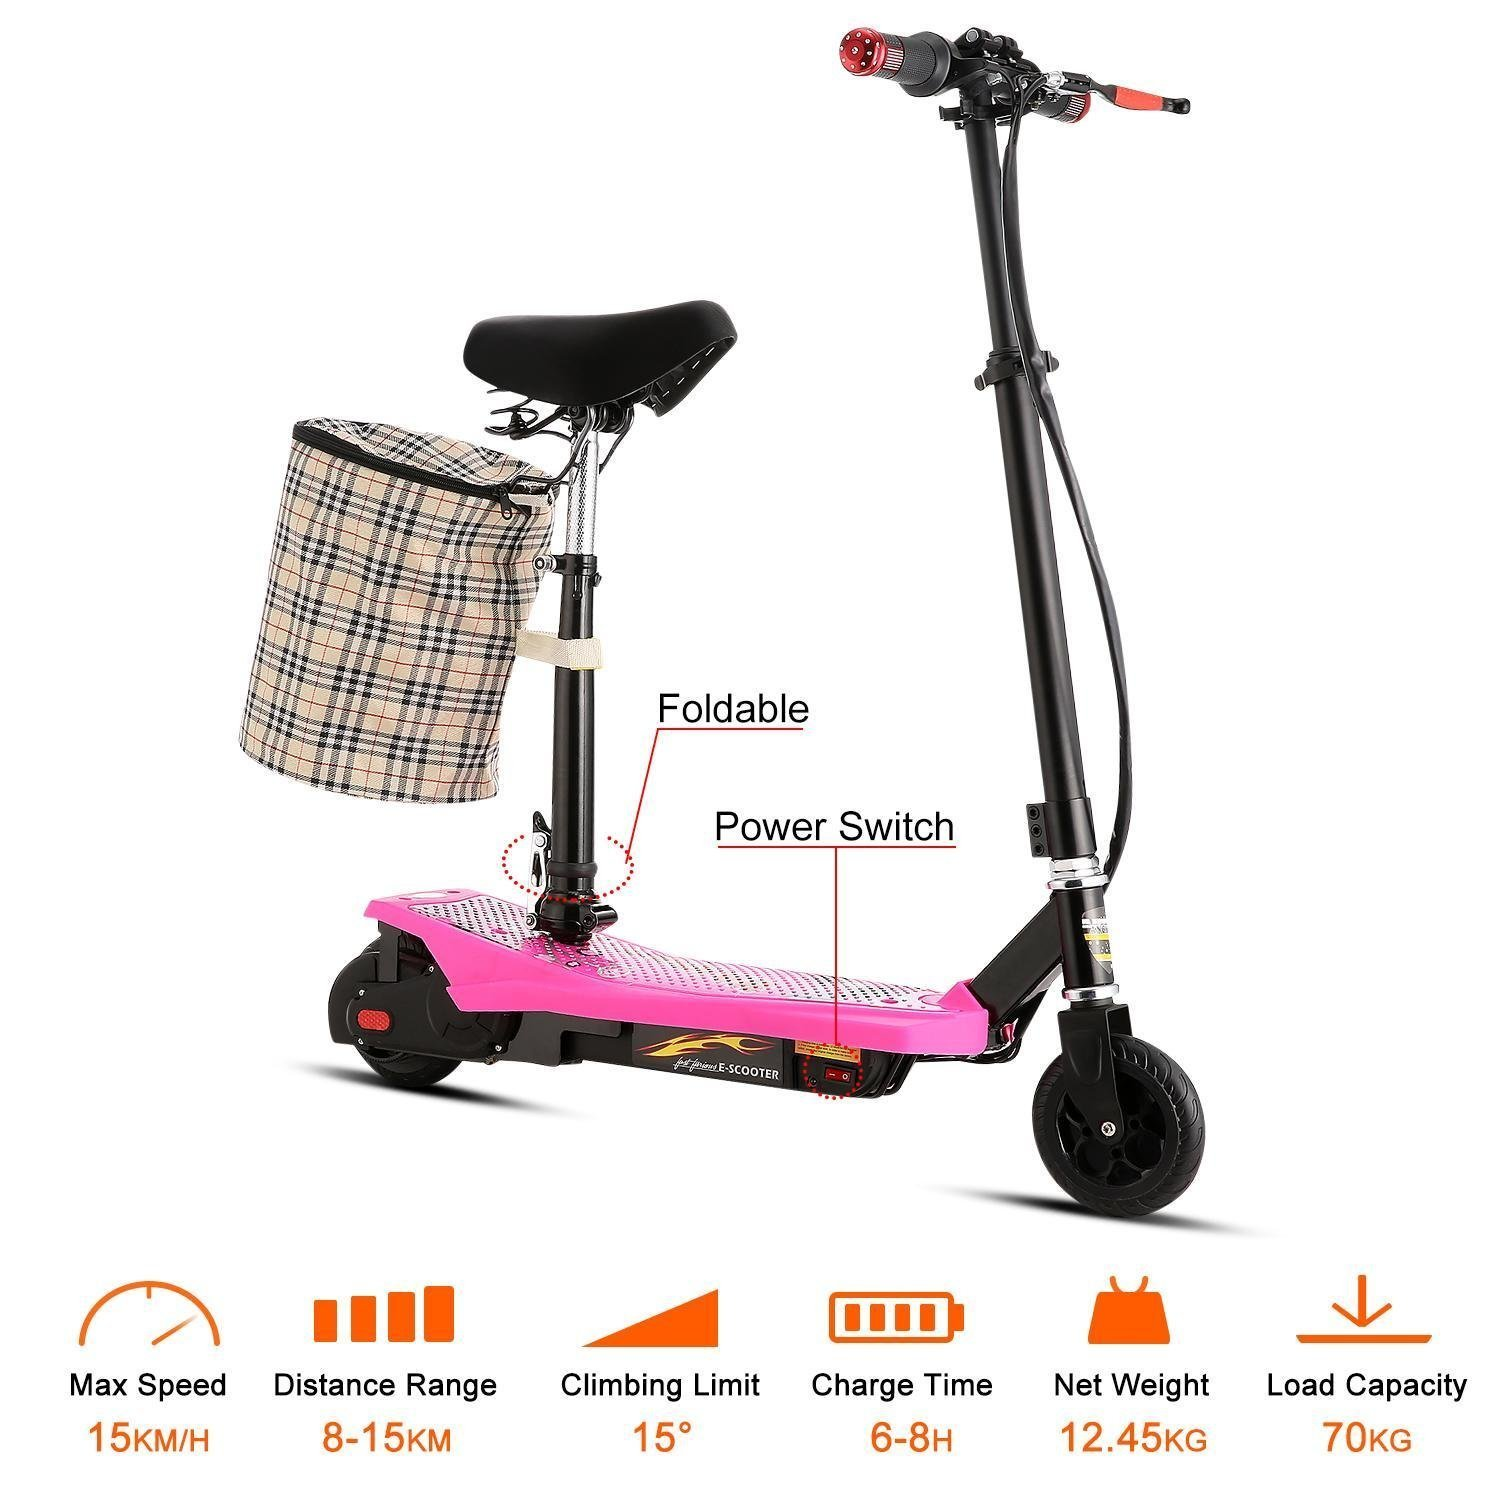 Leoneva Kids Girls 2-Wheel Mini Folding Electric Kick Scooter Bike with ABS, Retractable Seat, Detachable Basket-Hold, Age 13+ (Pink) by Leoneva